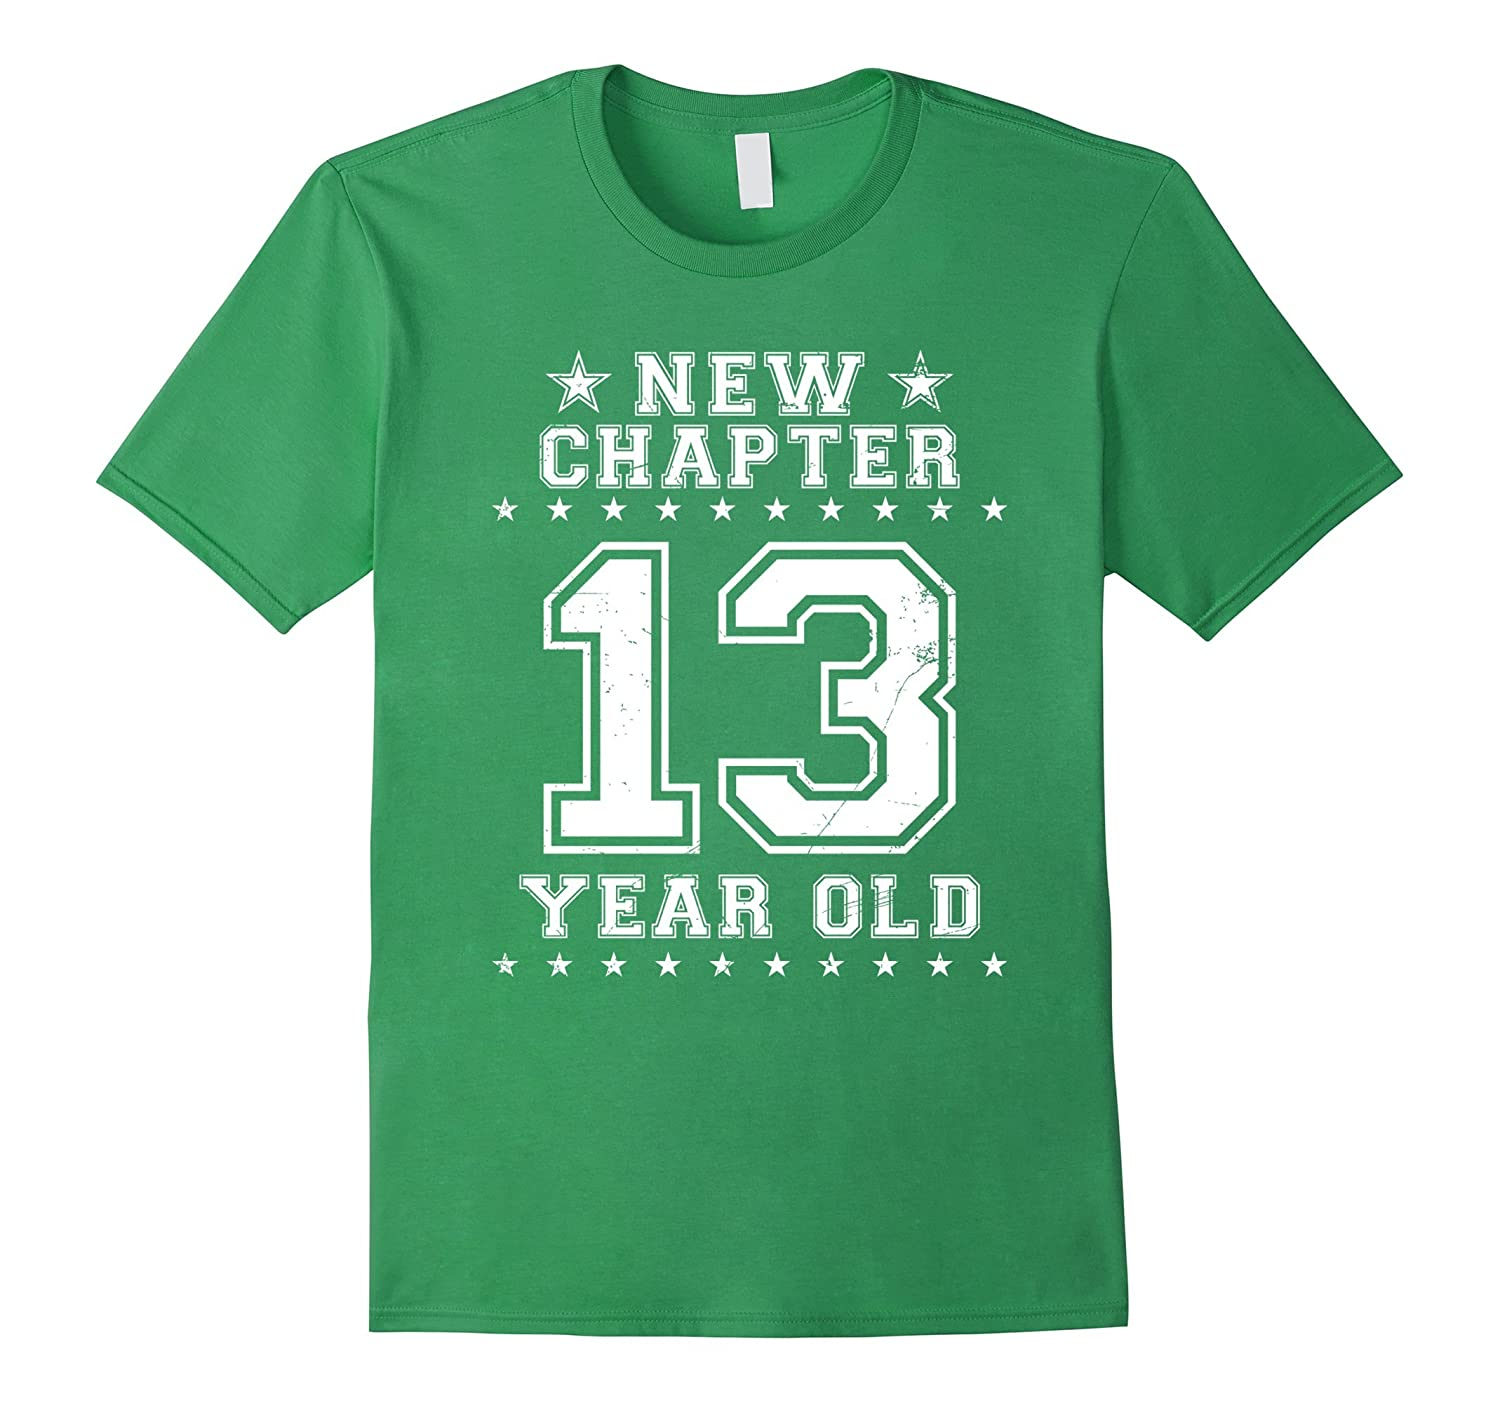 13 Year Old 13th Birthday T-Shirts Funny Gifts Born In 2004